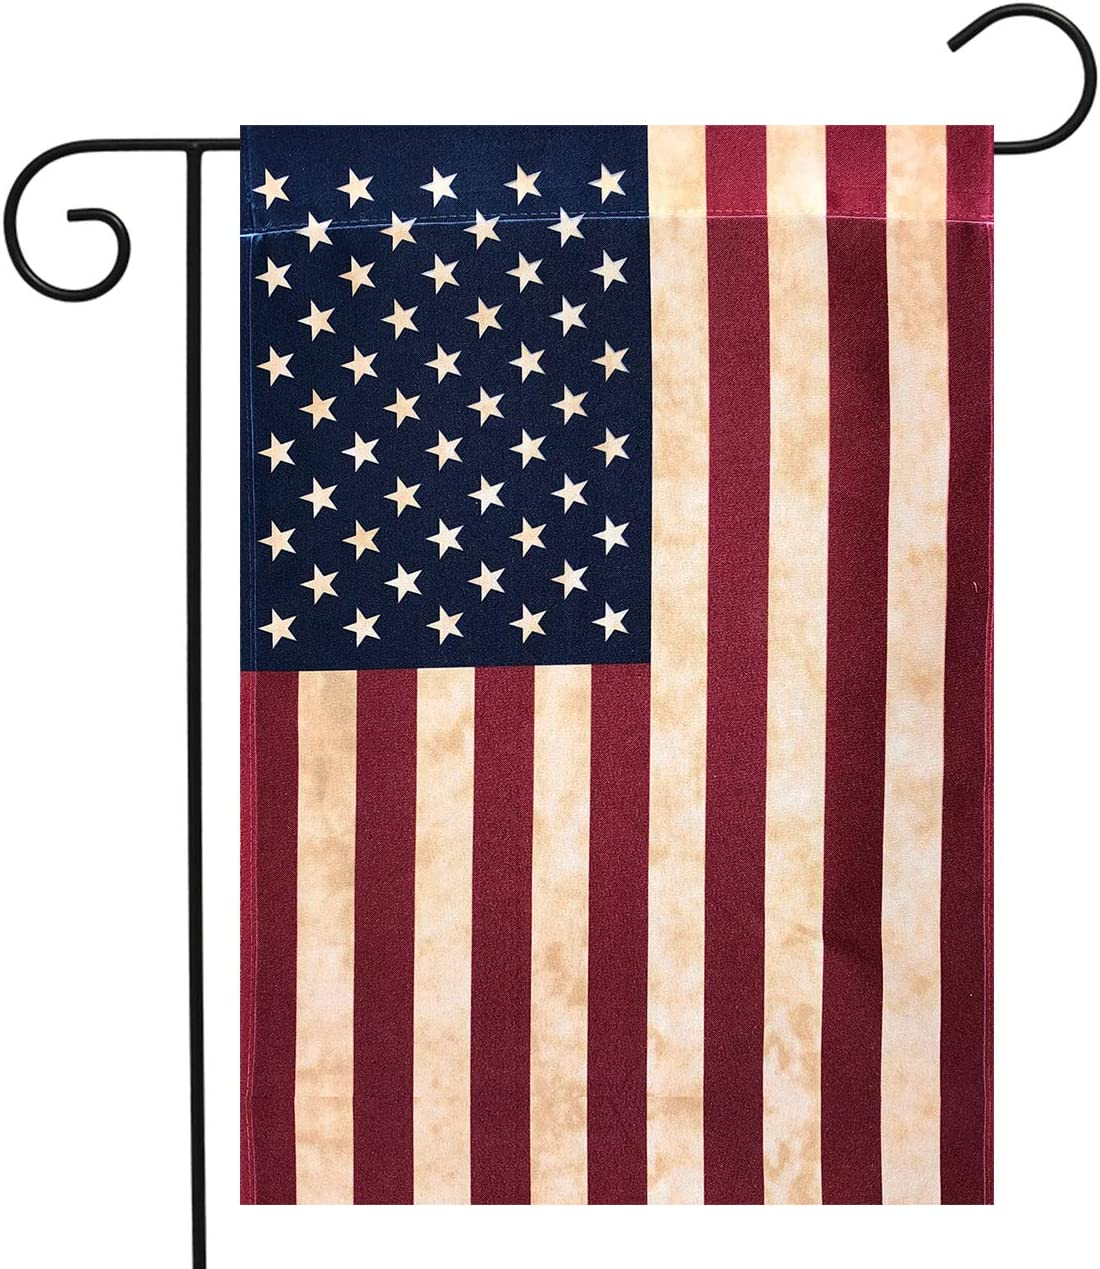 Briarwood Lane Tea Stained American Garden Flag American Flag 12.5